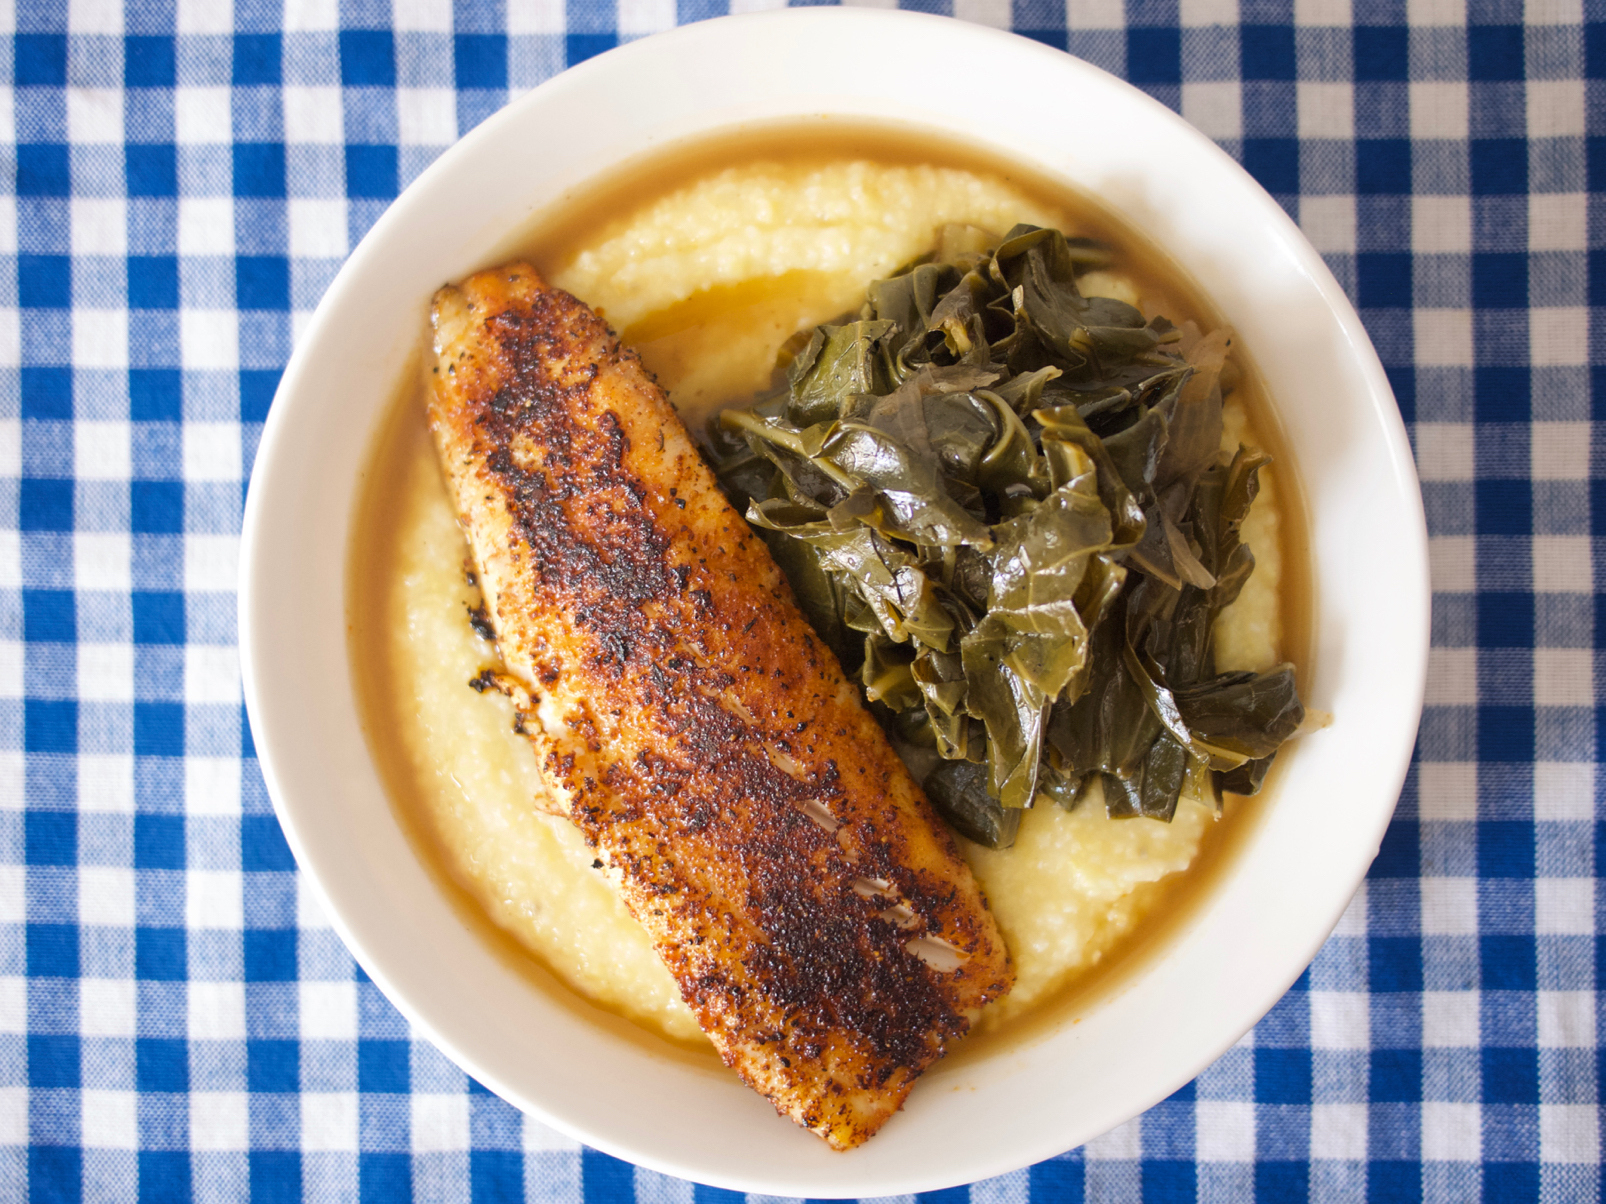 Blackened Fish with Smoky Braised Collards and Polenta